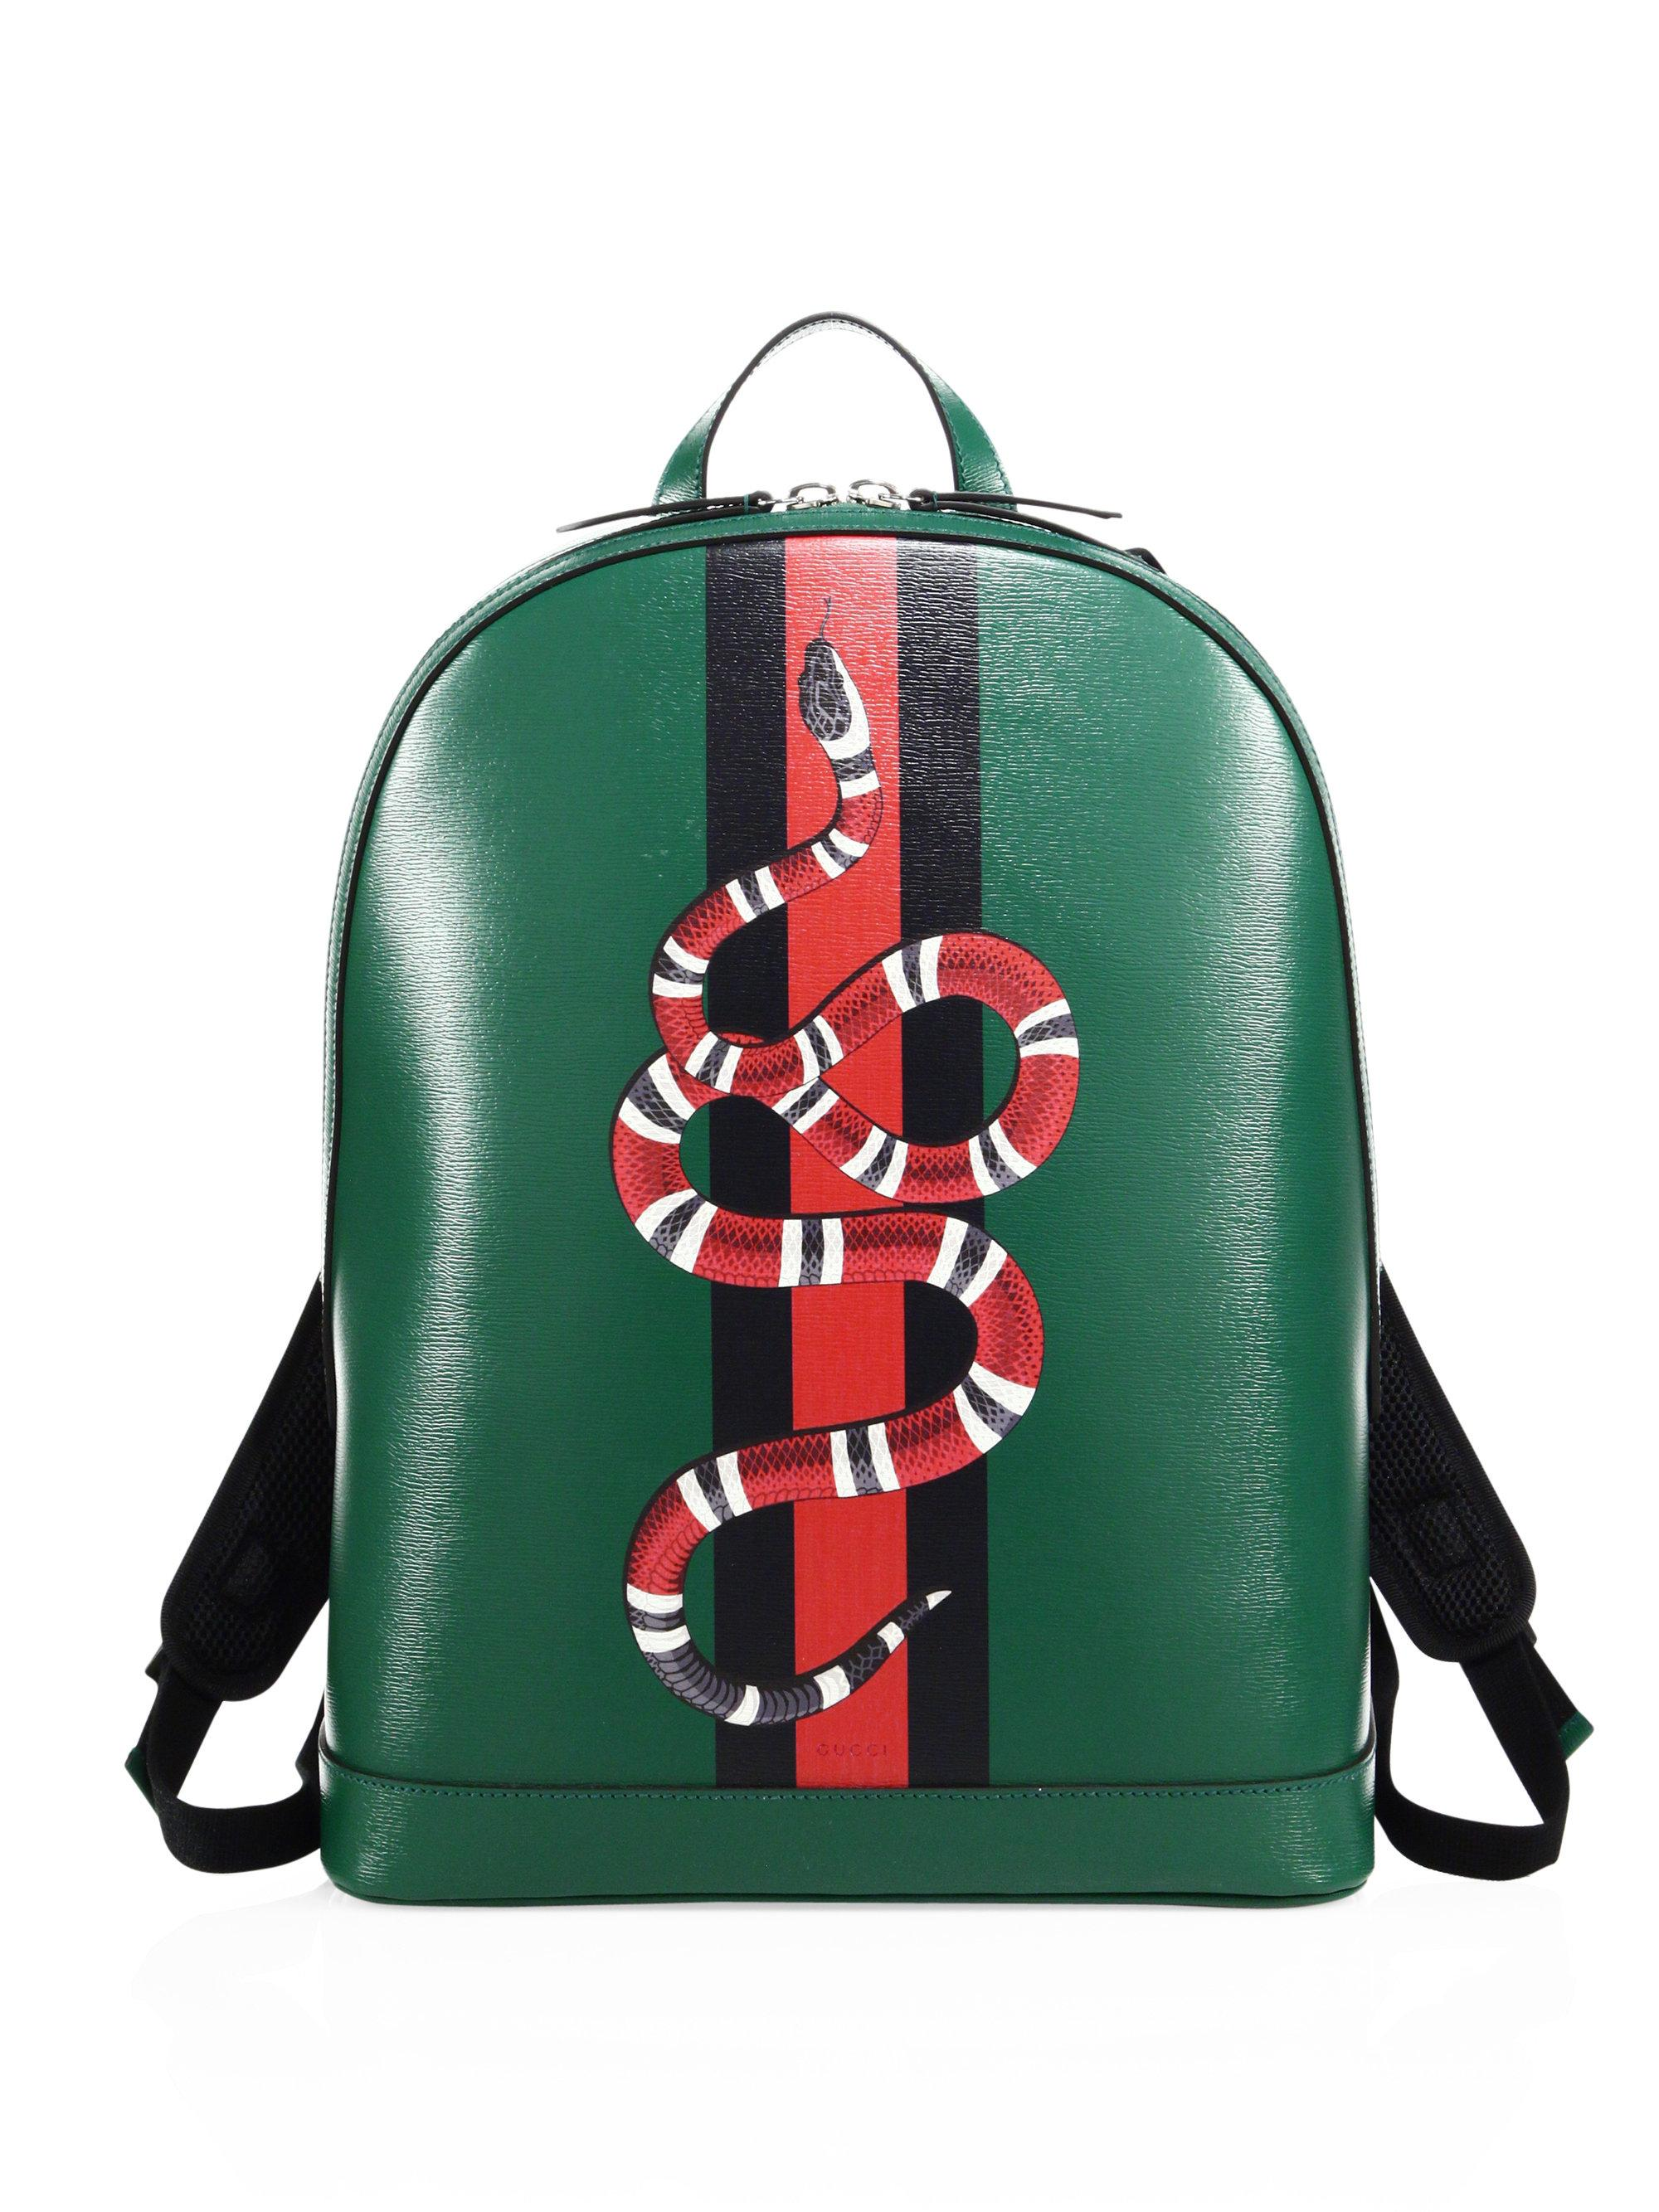 059f00481fb2 Gucci Snake Printed Leather Backpack in Green for Men - Lyst